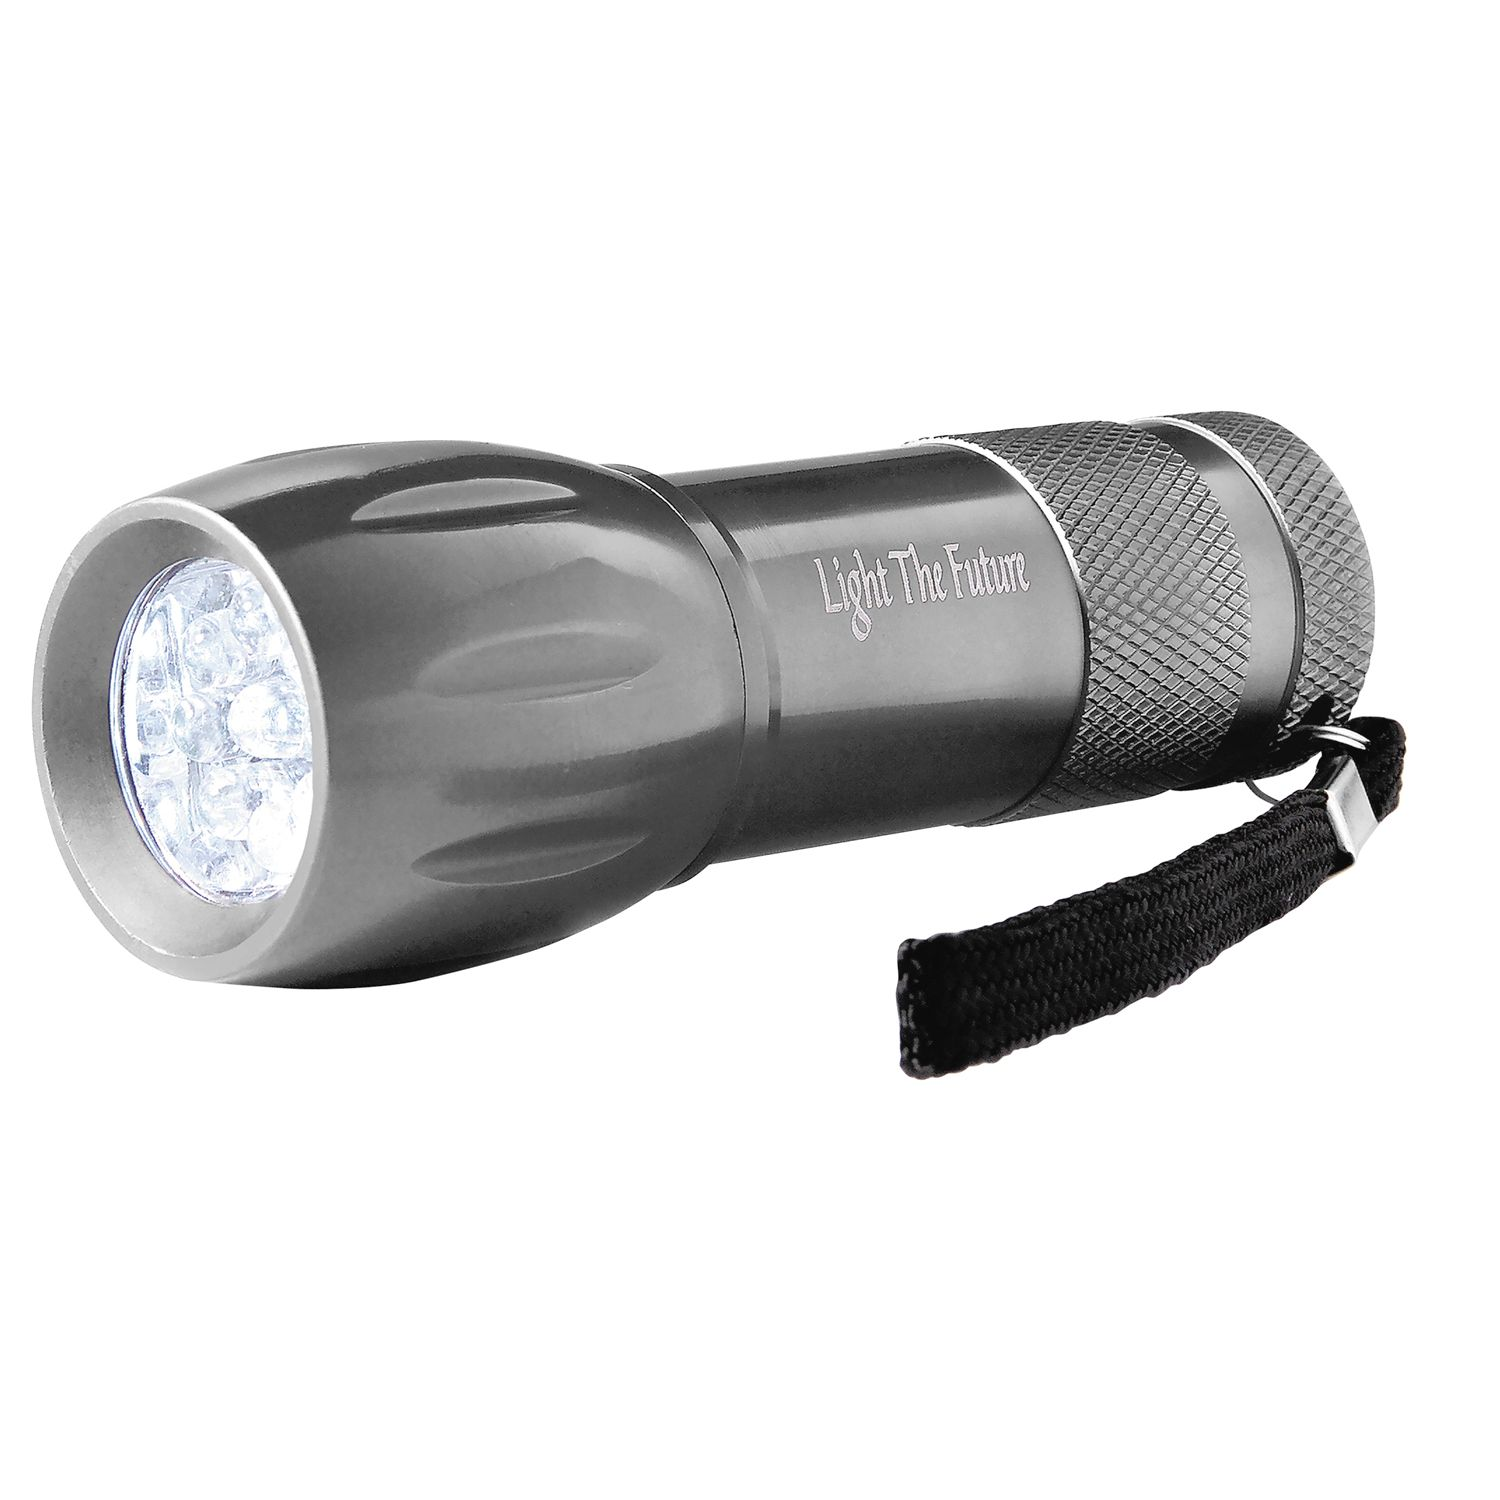 L100 flashlight with logo custom printed